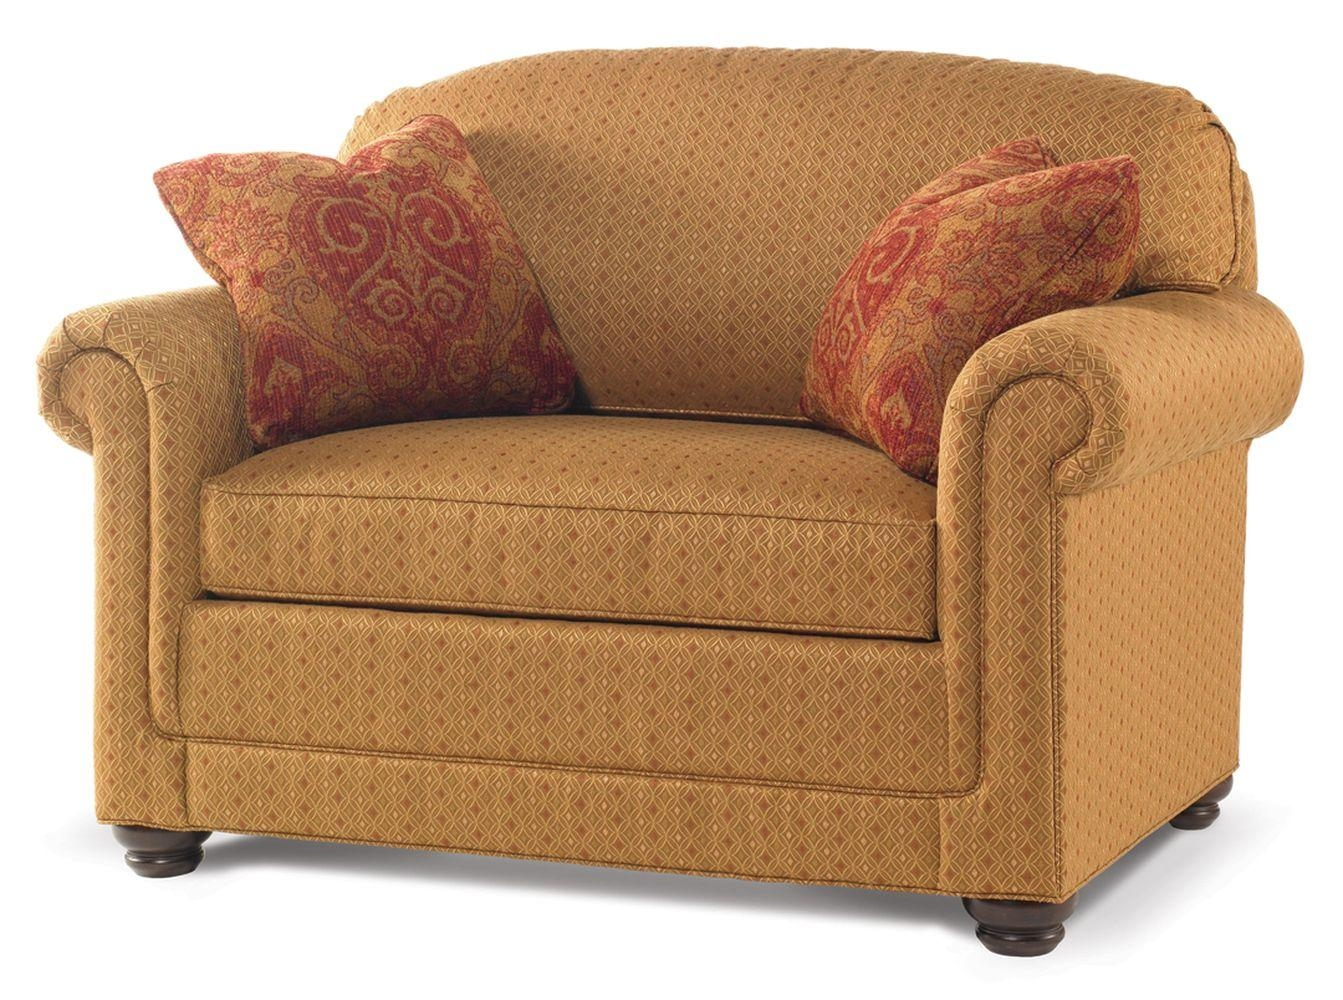 Small Twin Sleeper Sofas Chairs With Pillow And Storage Plus Brown Inside Sofa With Chairs (View 19 of 20)